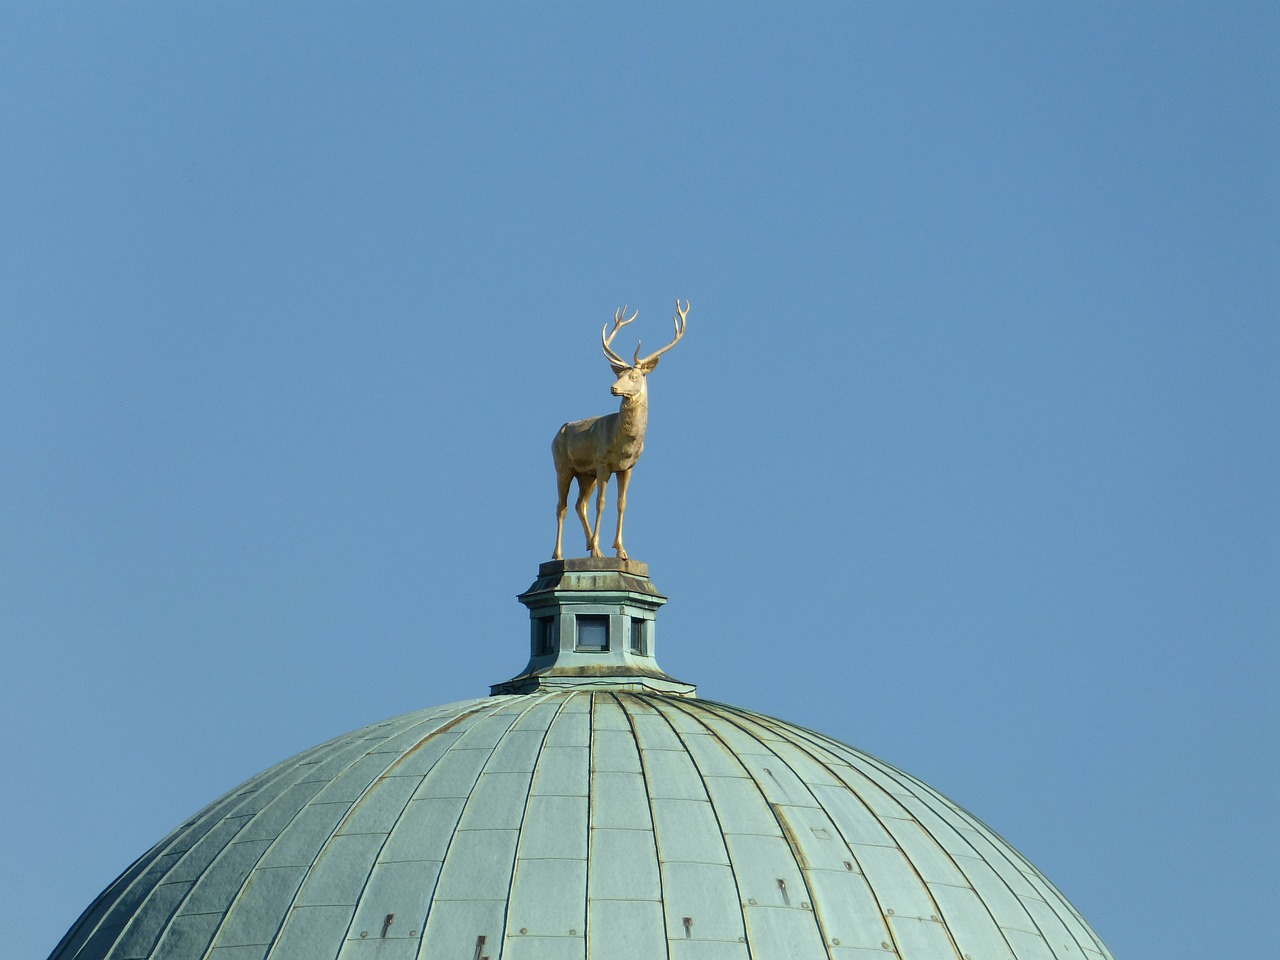 dome,roof,about,hirsch,antler,statue,bronze,gold,sky,blue,free pictures, free photos, free images, royalty free, free illustrations